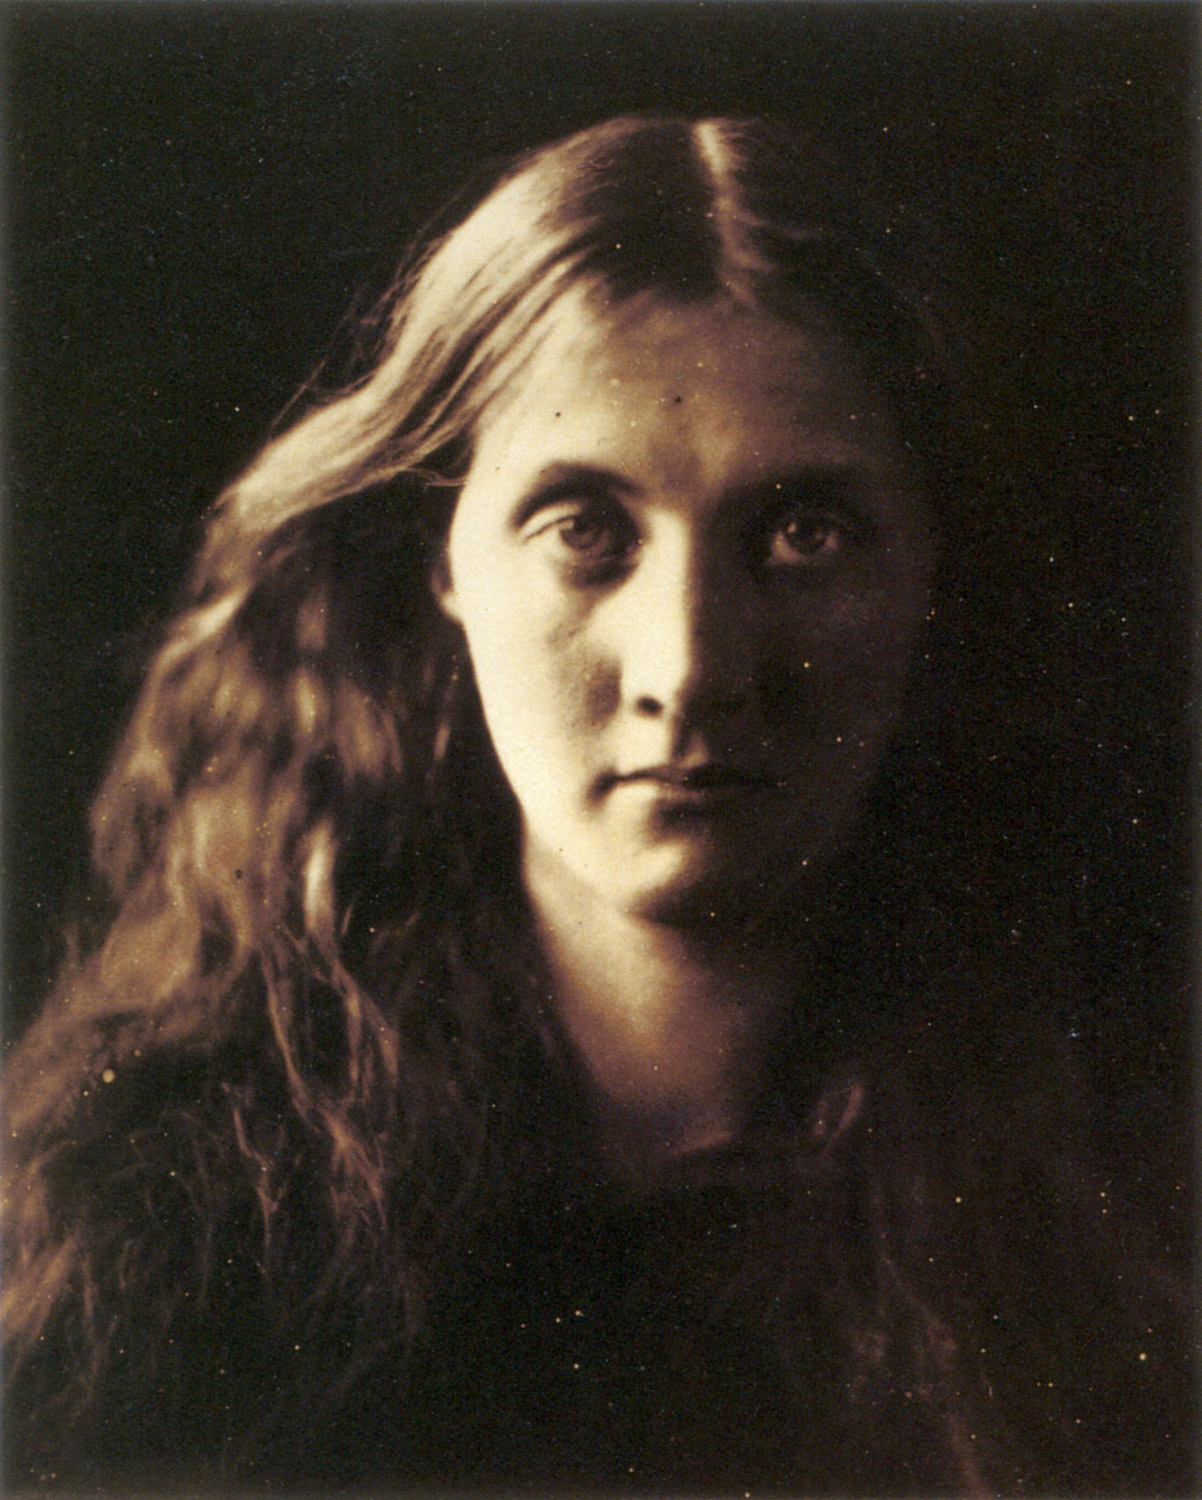 https://i0.wp.com/digital-photography-school.com/wp-content/uploads/2018/12/Julia_Margaret_Cameron.jpg?resize=1202%2C1500&ssl=1